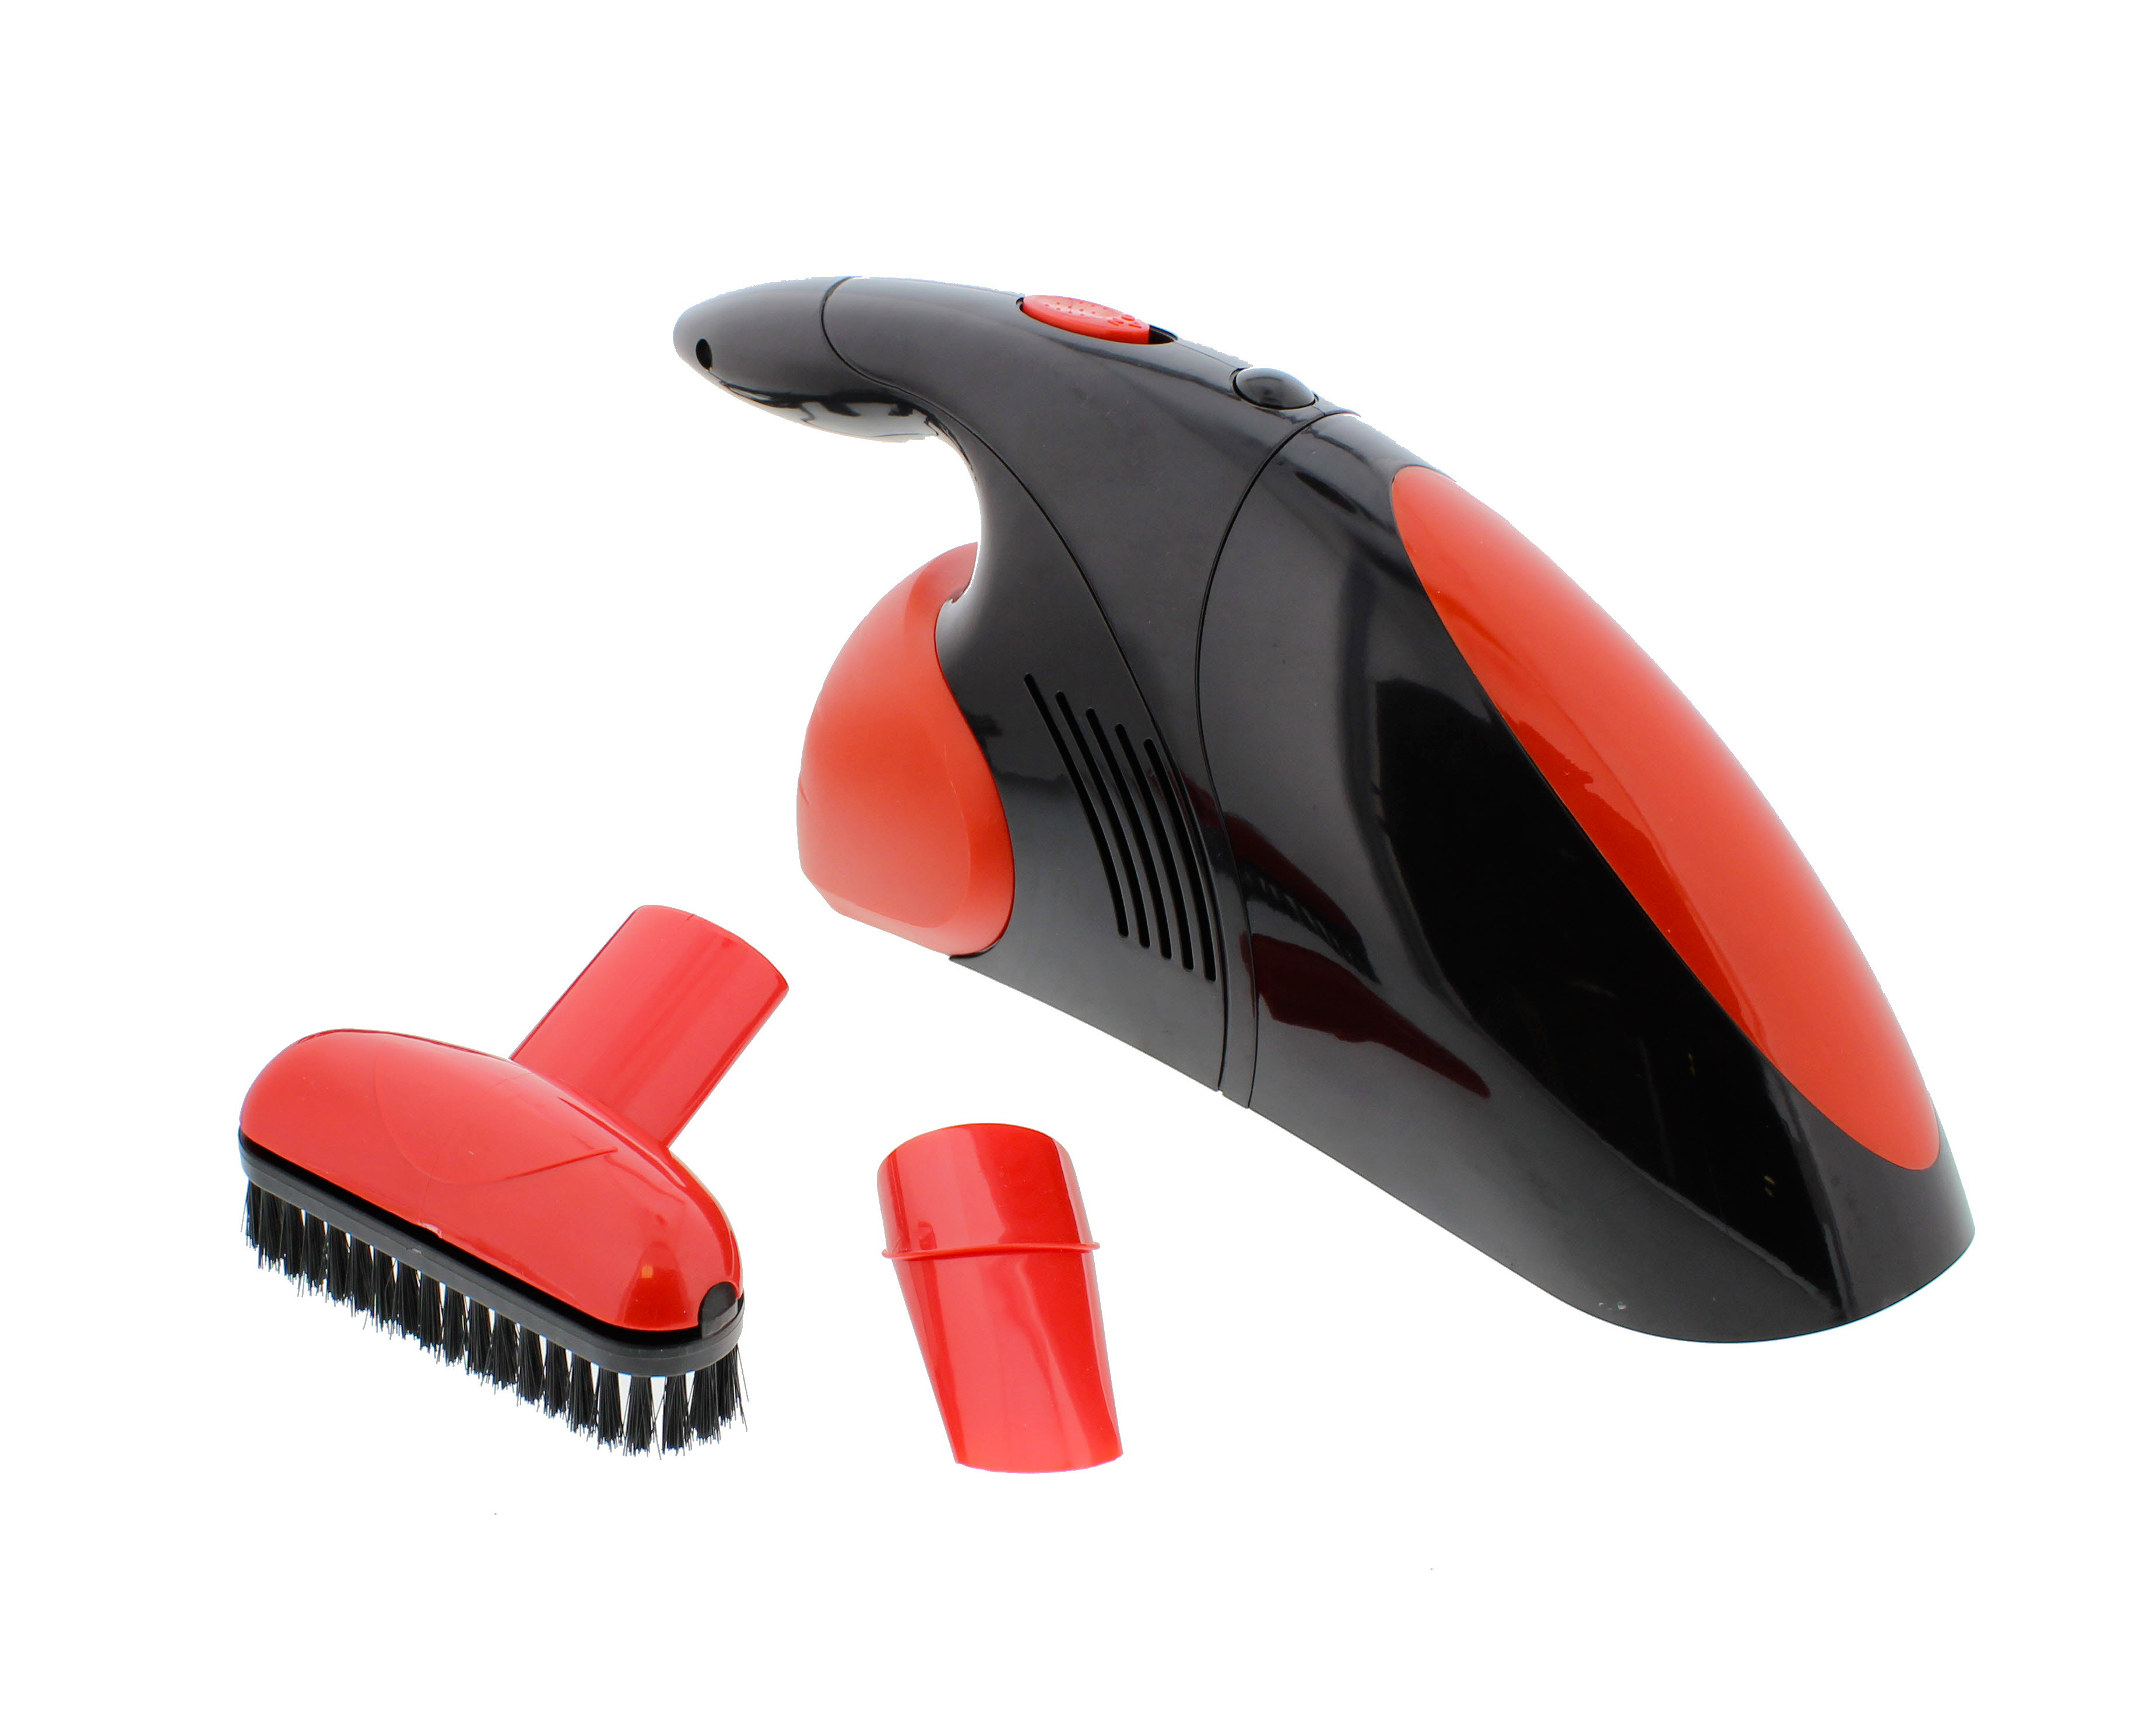 ABN Car Vacuum Cleaner, 12V, Compact with Brush & Narrow Nozzles, Removable Bowl by Auto Body Now